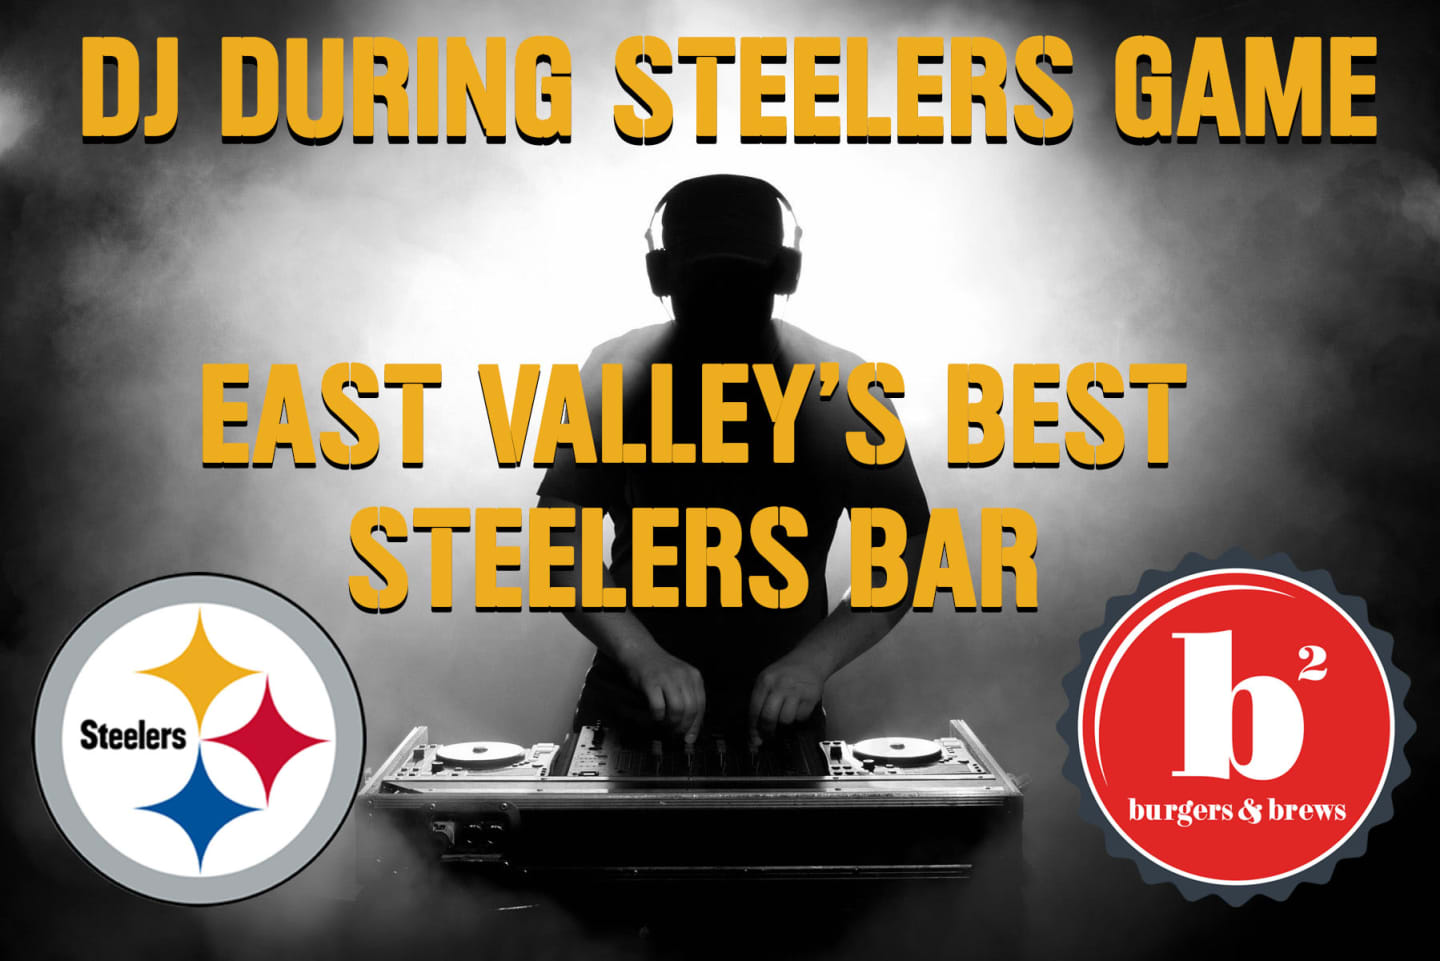 dj during steelers game - east valley's best steelers bar